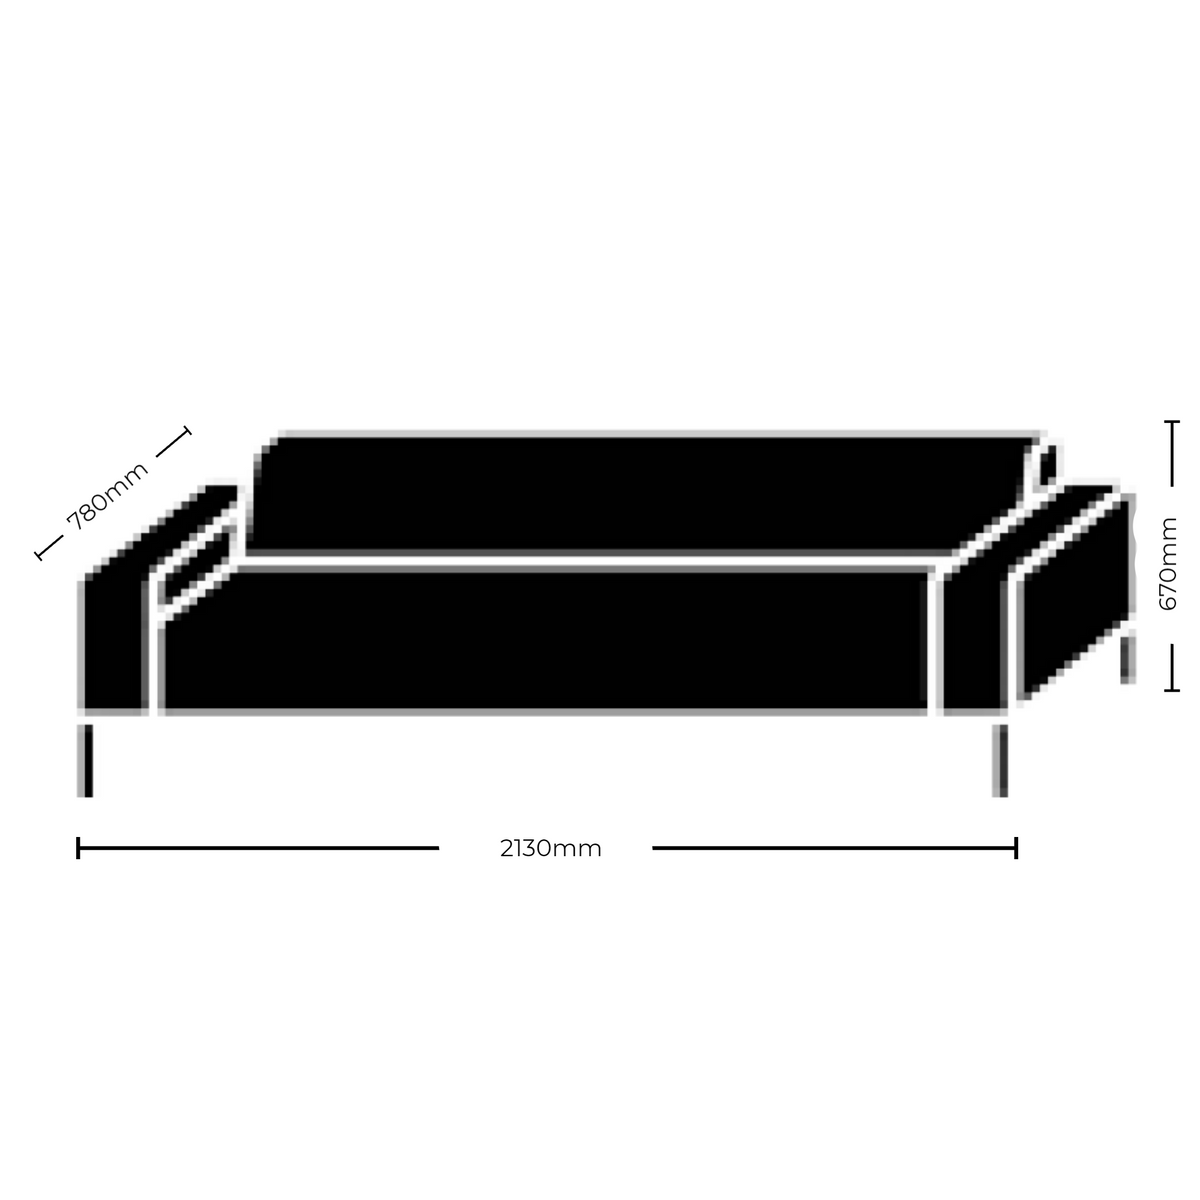 Dimensions for Hitch Mylius HM18 Origin Three Seat Sofa Black Legs